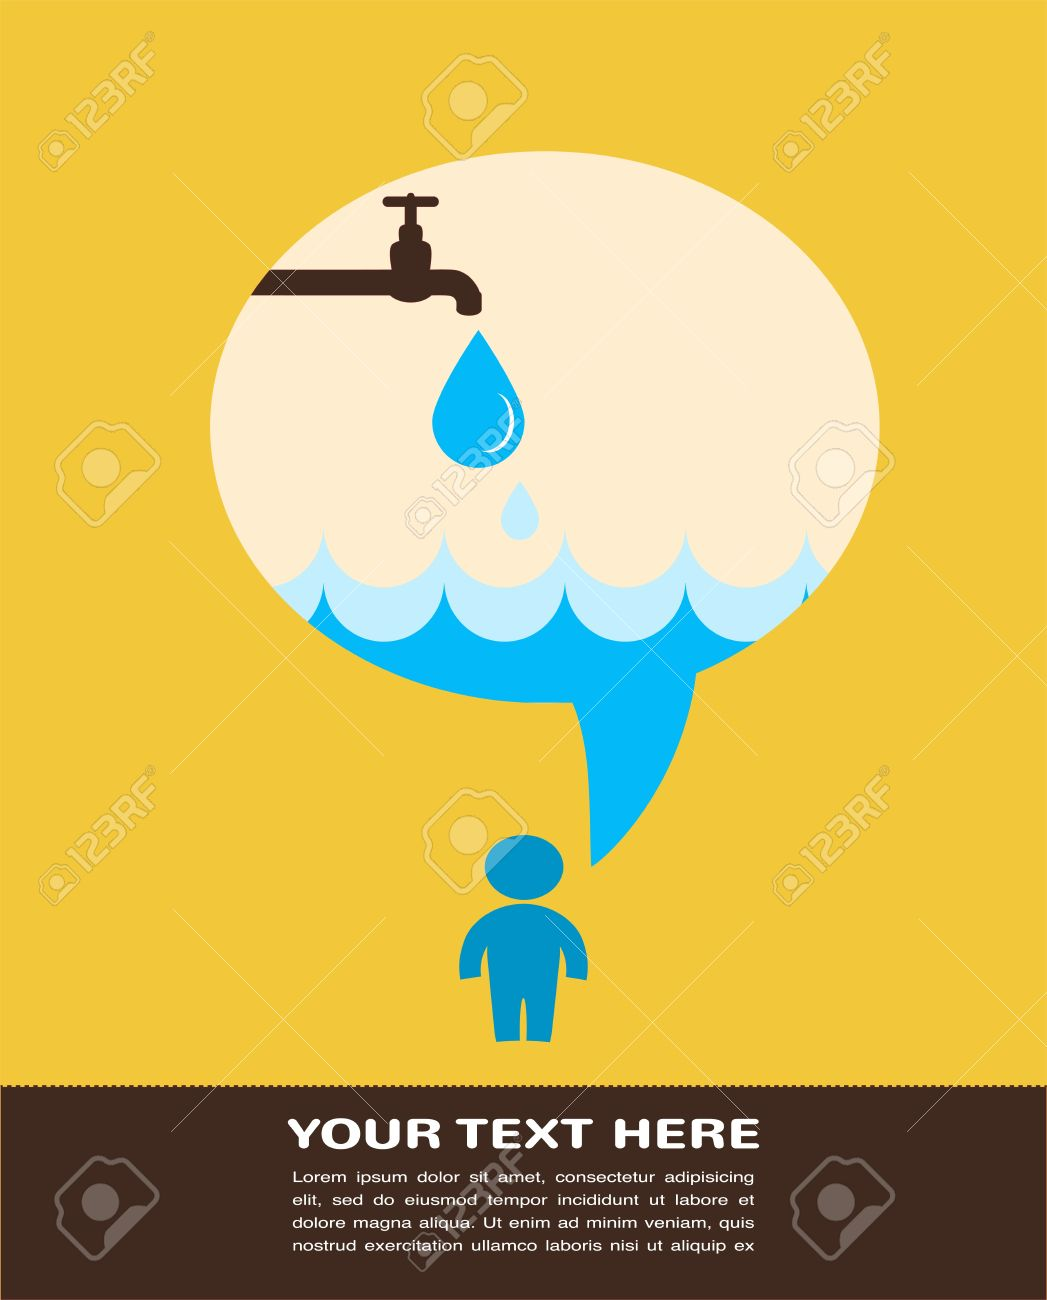 Save Water Stock Photos & Pictures. Royalty Free Save Water Images ...